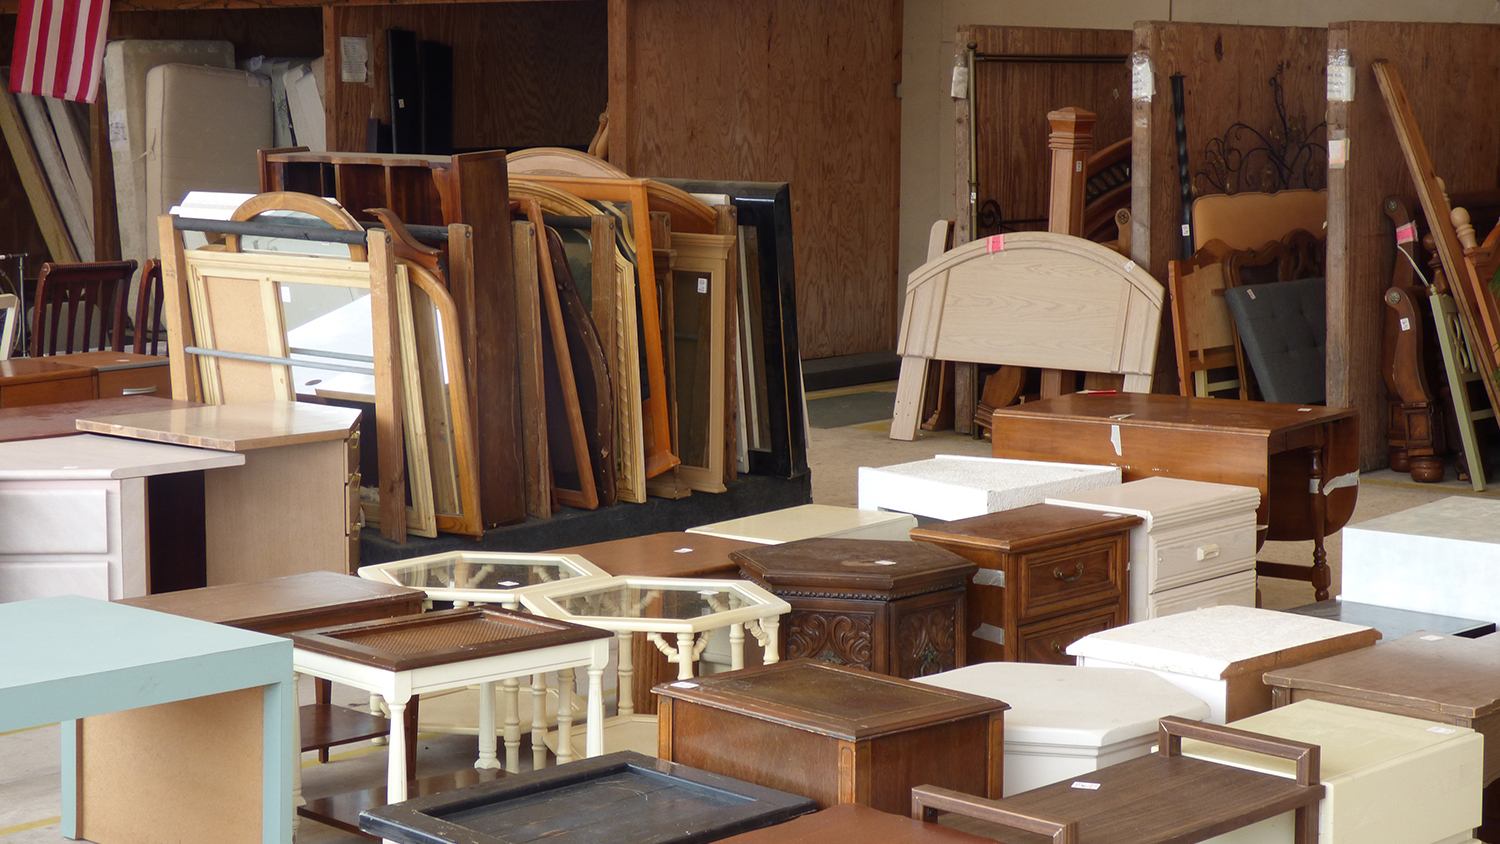 Faith Farm Furniture Donations Thrift Stores Faith Farm Ministries Best Am Radio Personality